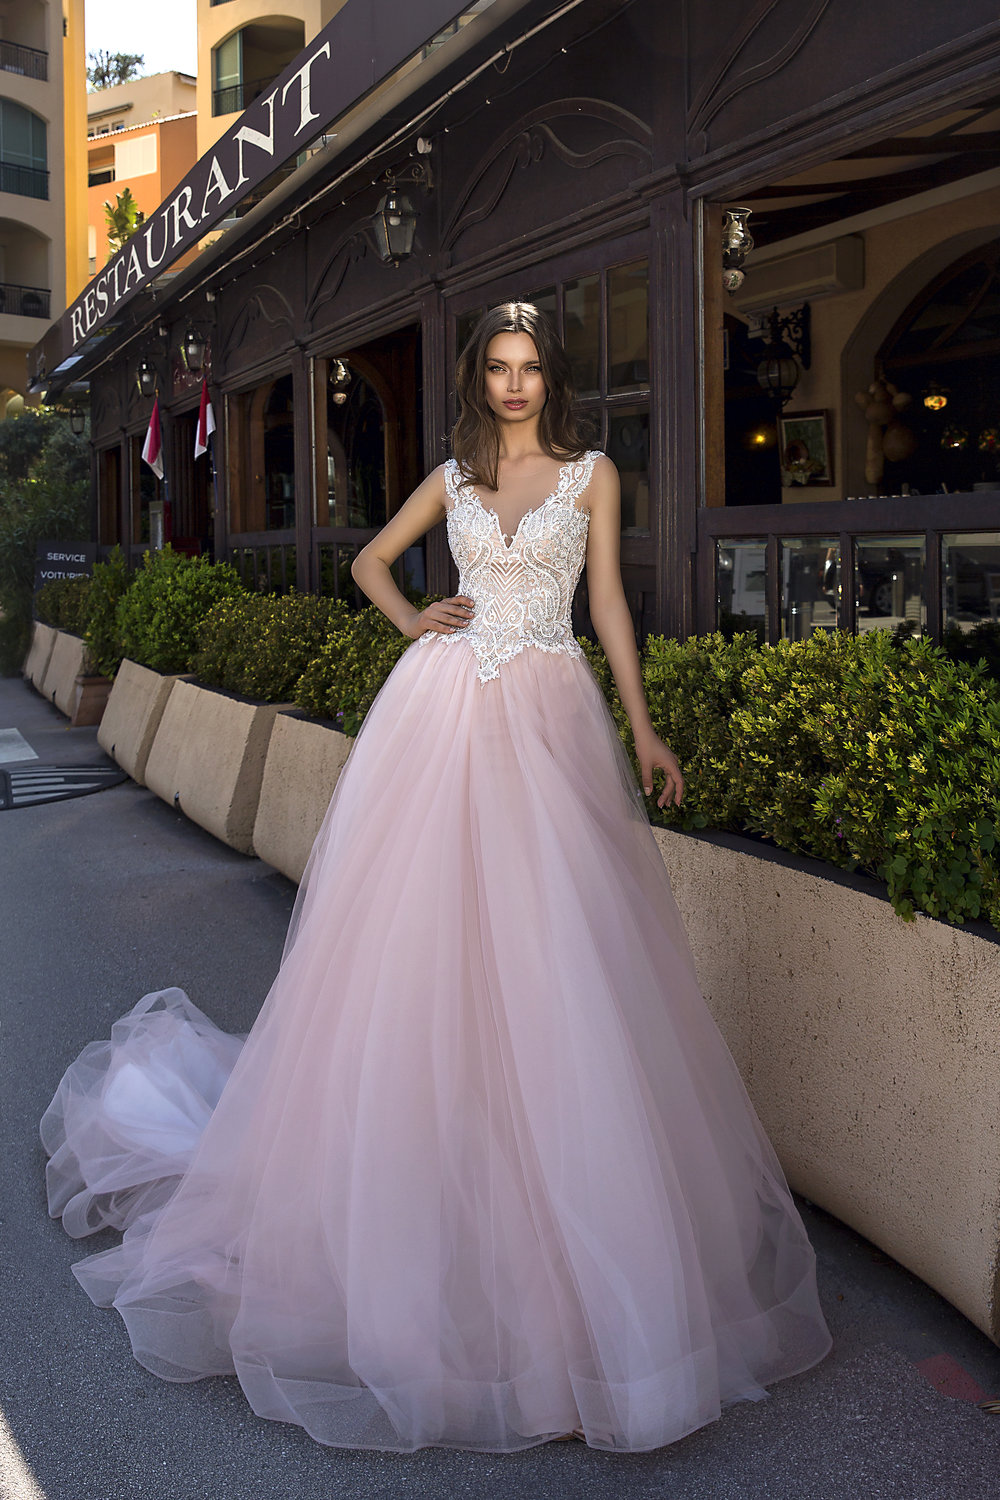 FEDERICA wedding dress by TINA VALERDI